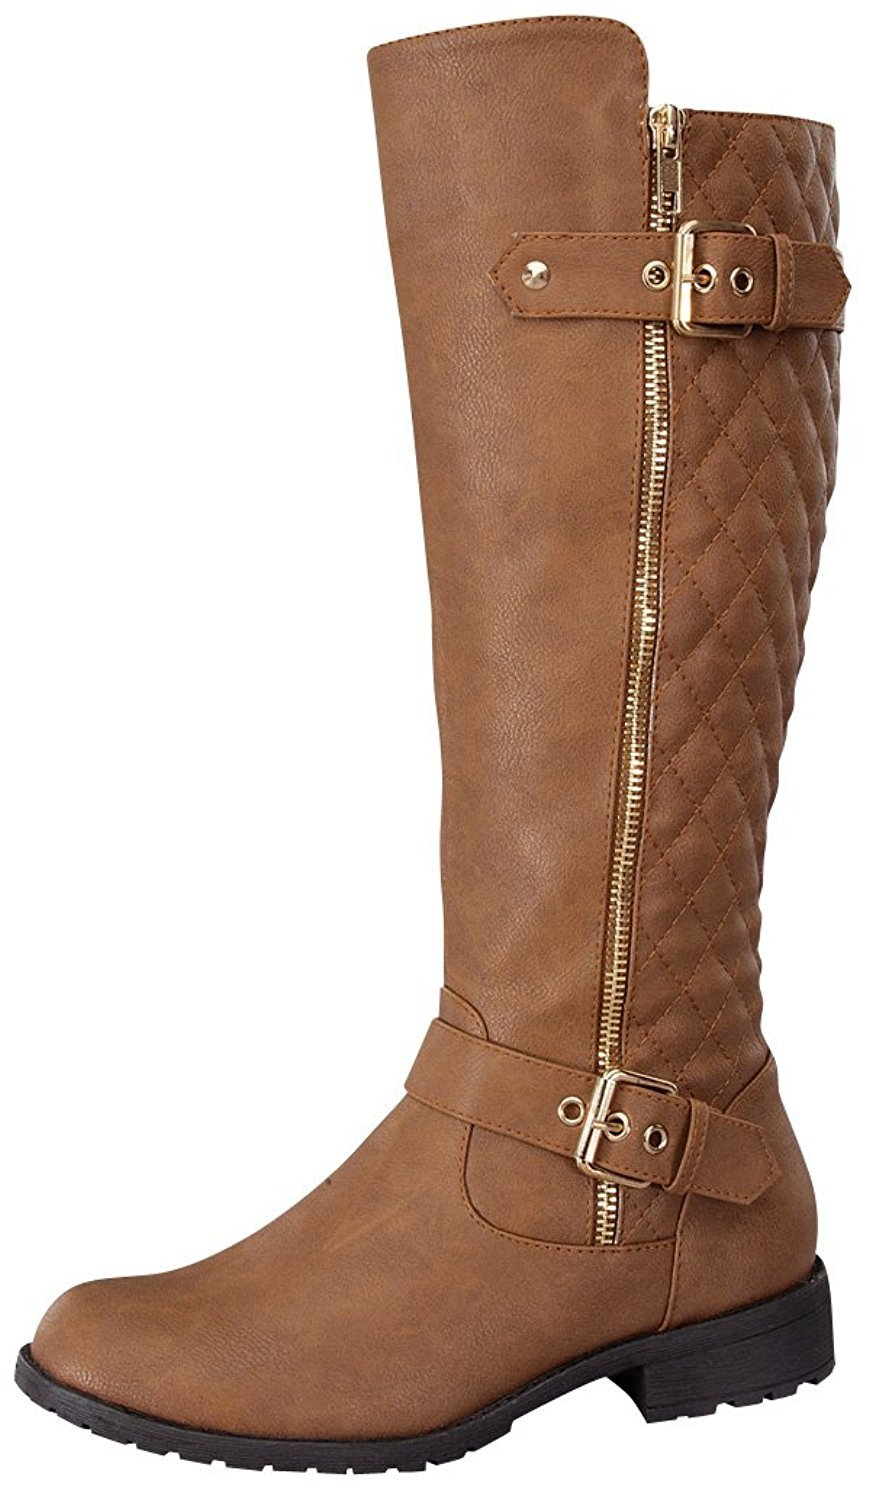 Top Moda Women's Bally-32 Knee High Quilted Leather Riding Boot (8.5, Tan)